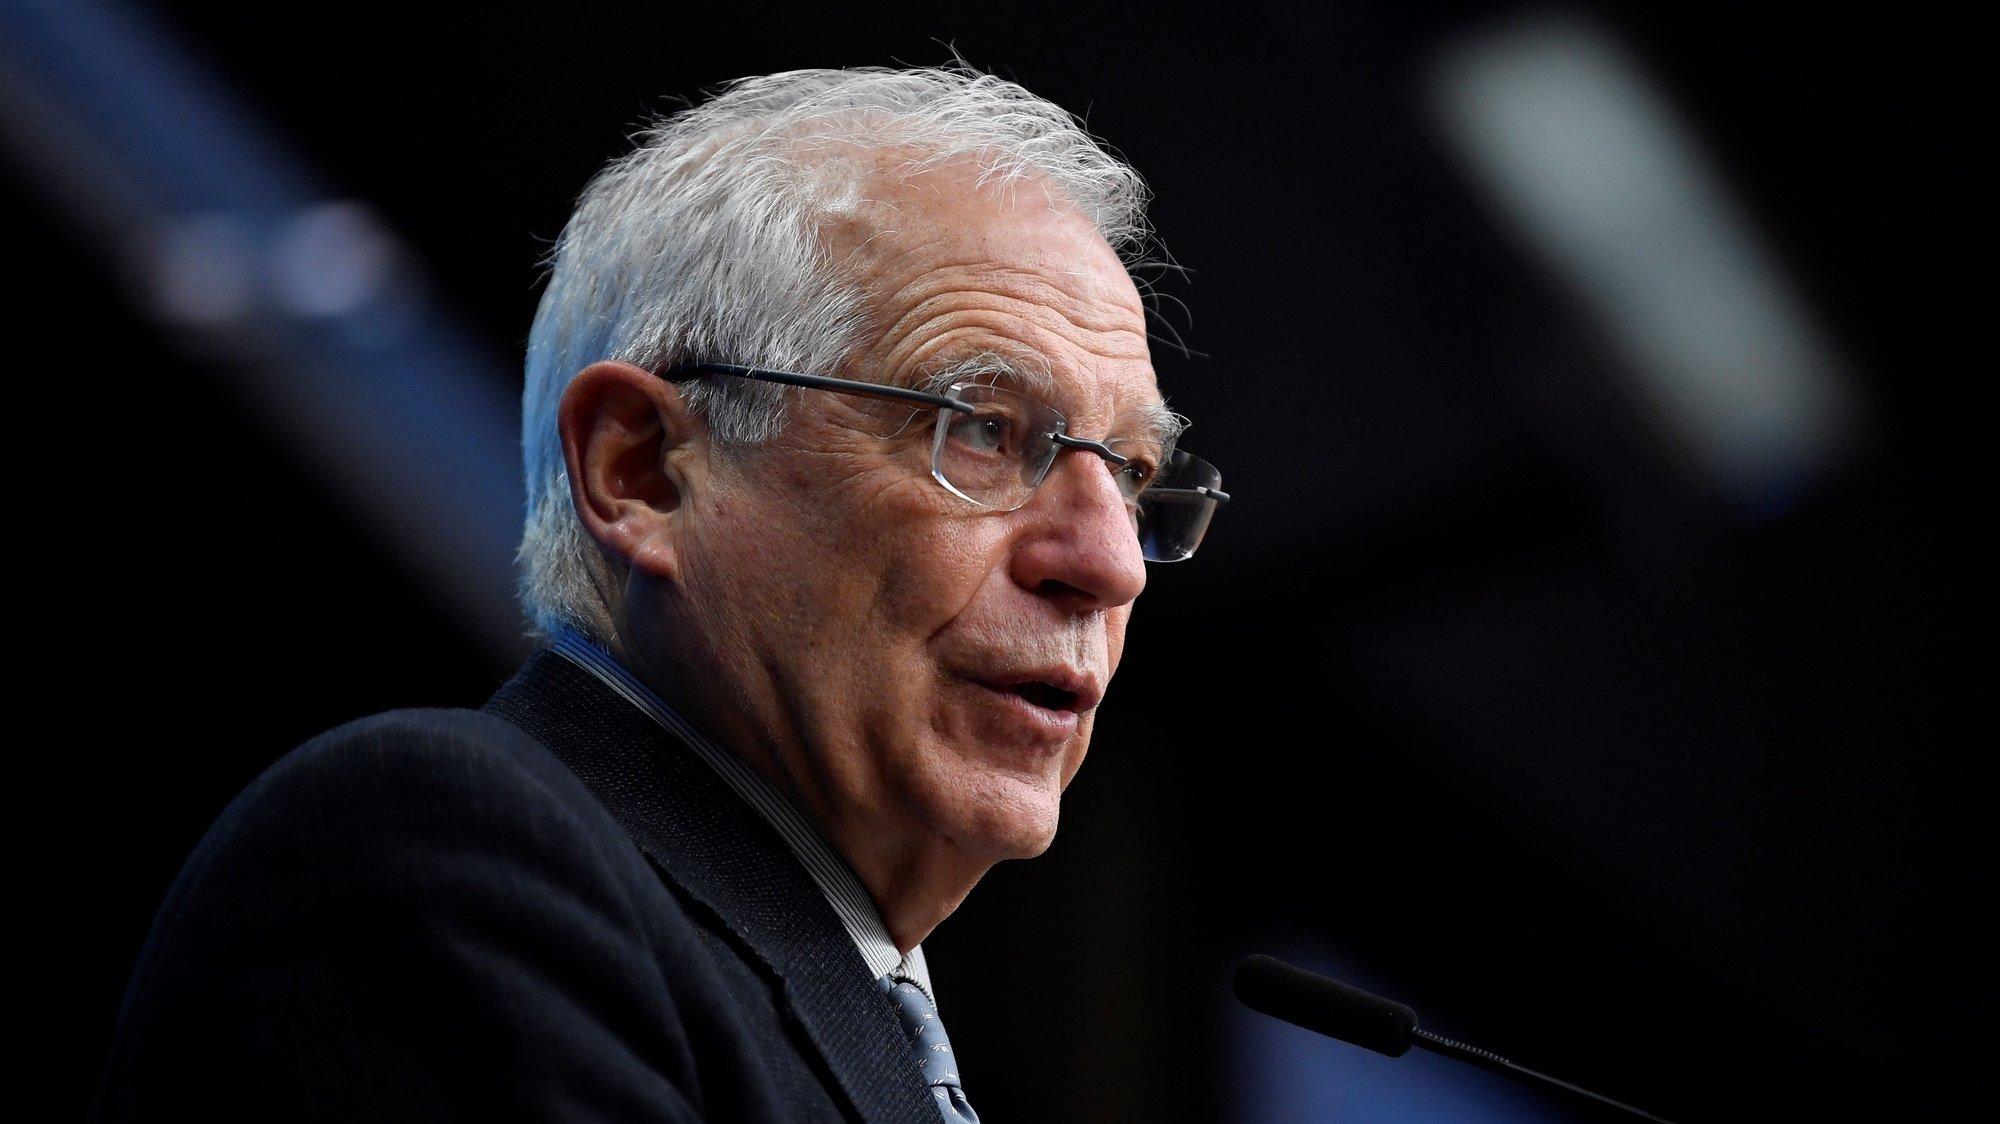 epa08964568 European Union for Foreign Affairs and Security Policy Josep Borrell speaks during a press conference following a meeting with EU Ministers of Foreign Affairs at the EU headquarters, in Brussels, Belgium, 25 January 2021.  EPA/JOHN THYS / POOL